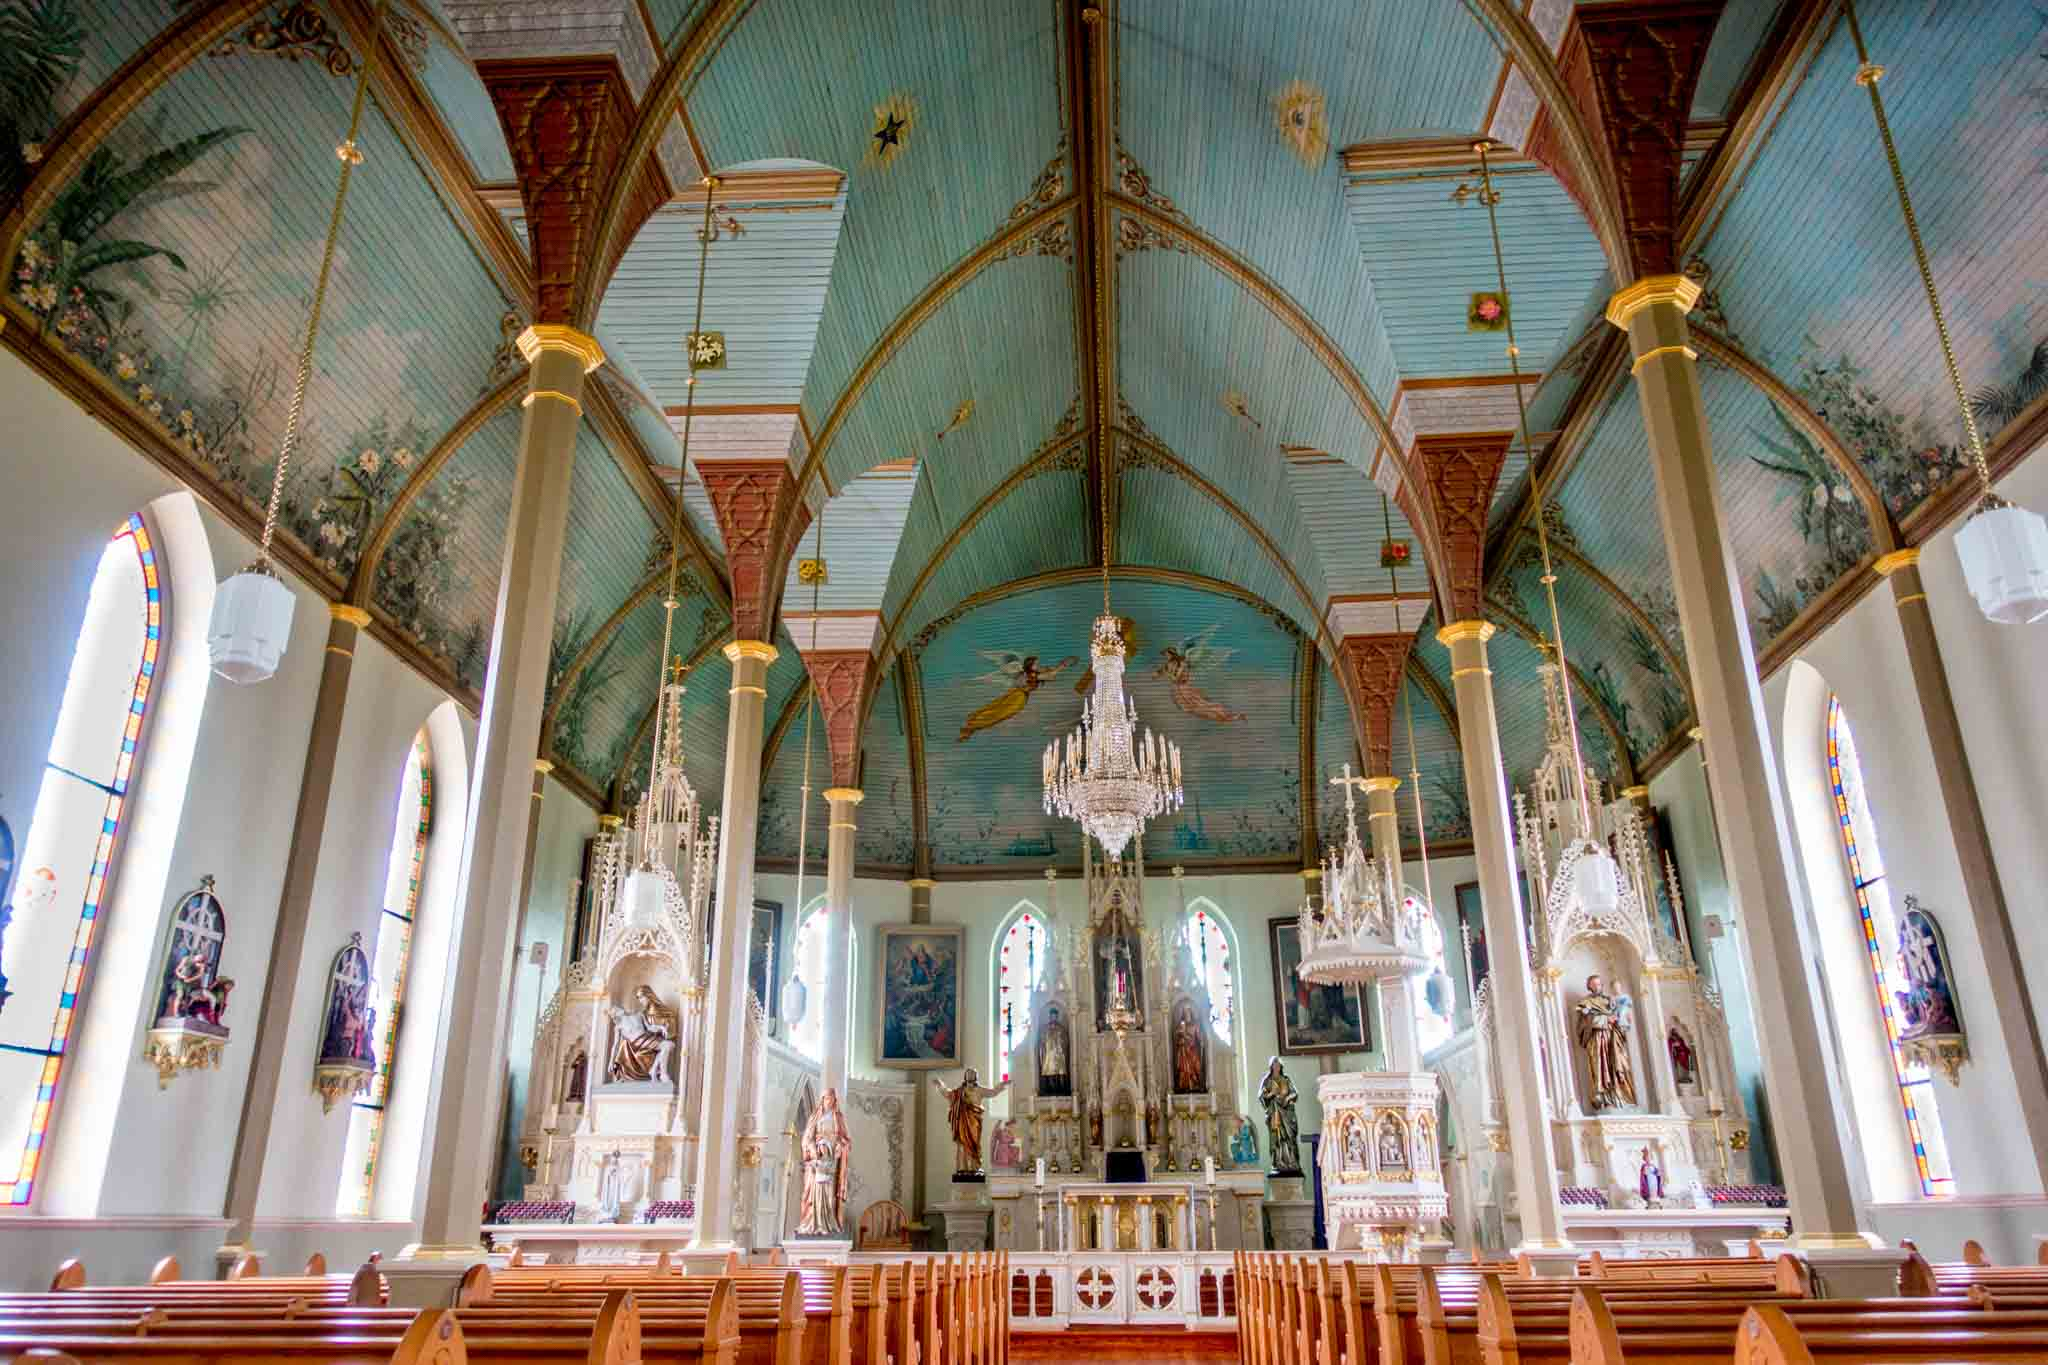 Beautiful sanctuary of the St Mary's Church of the Assumption, one of the Schulenburg Texas painted churches